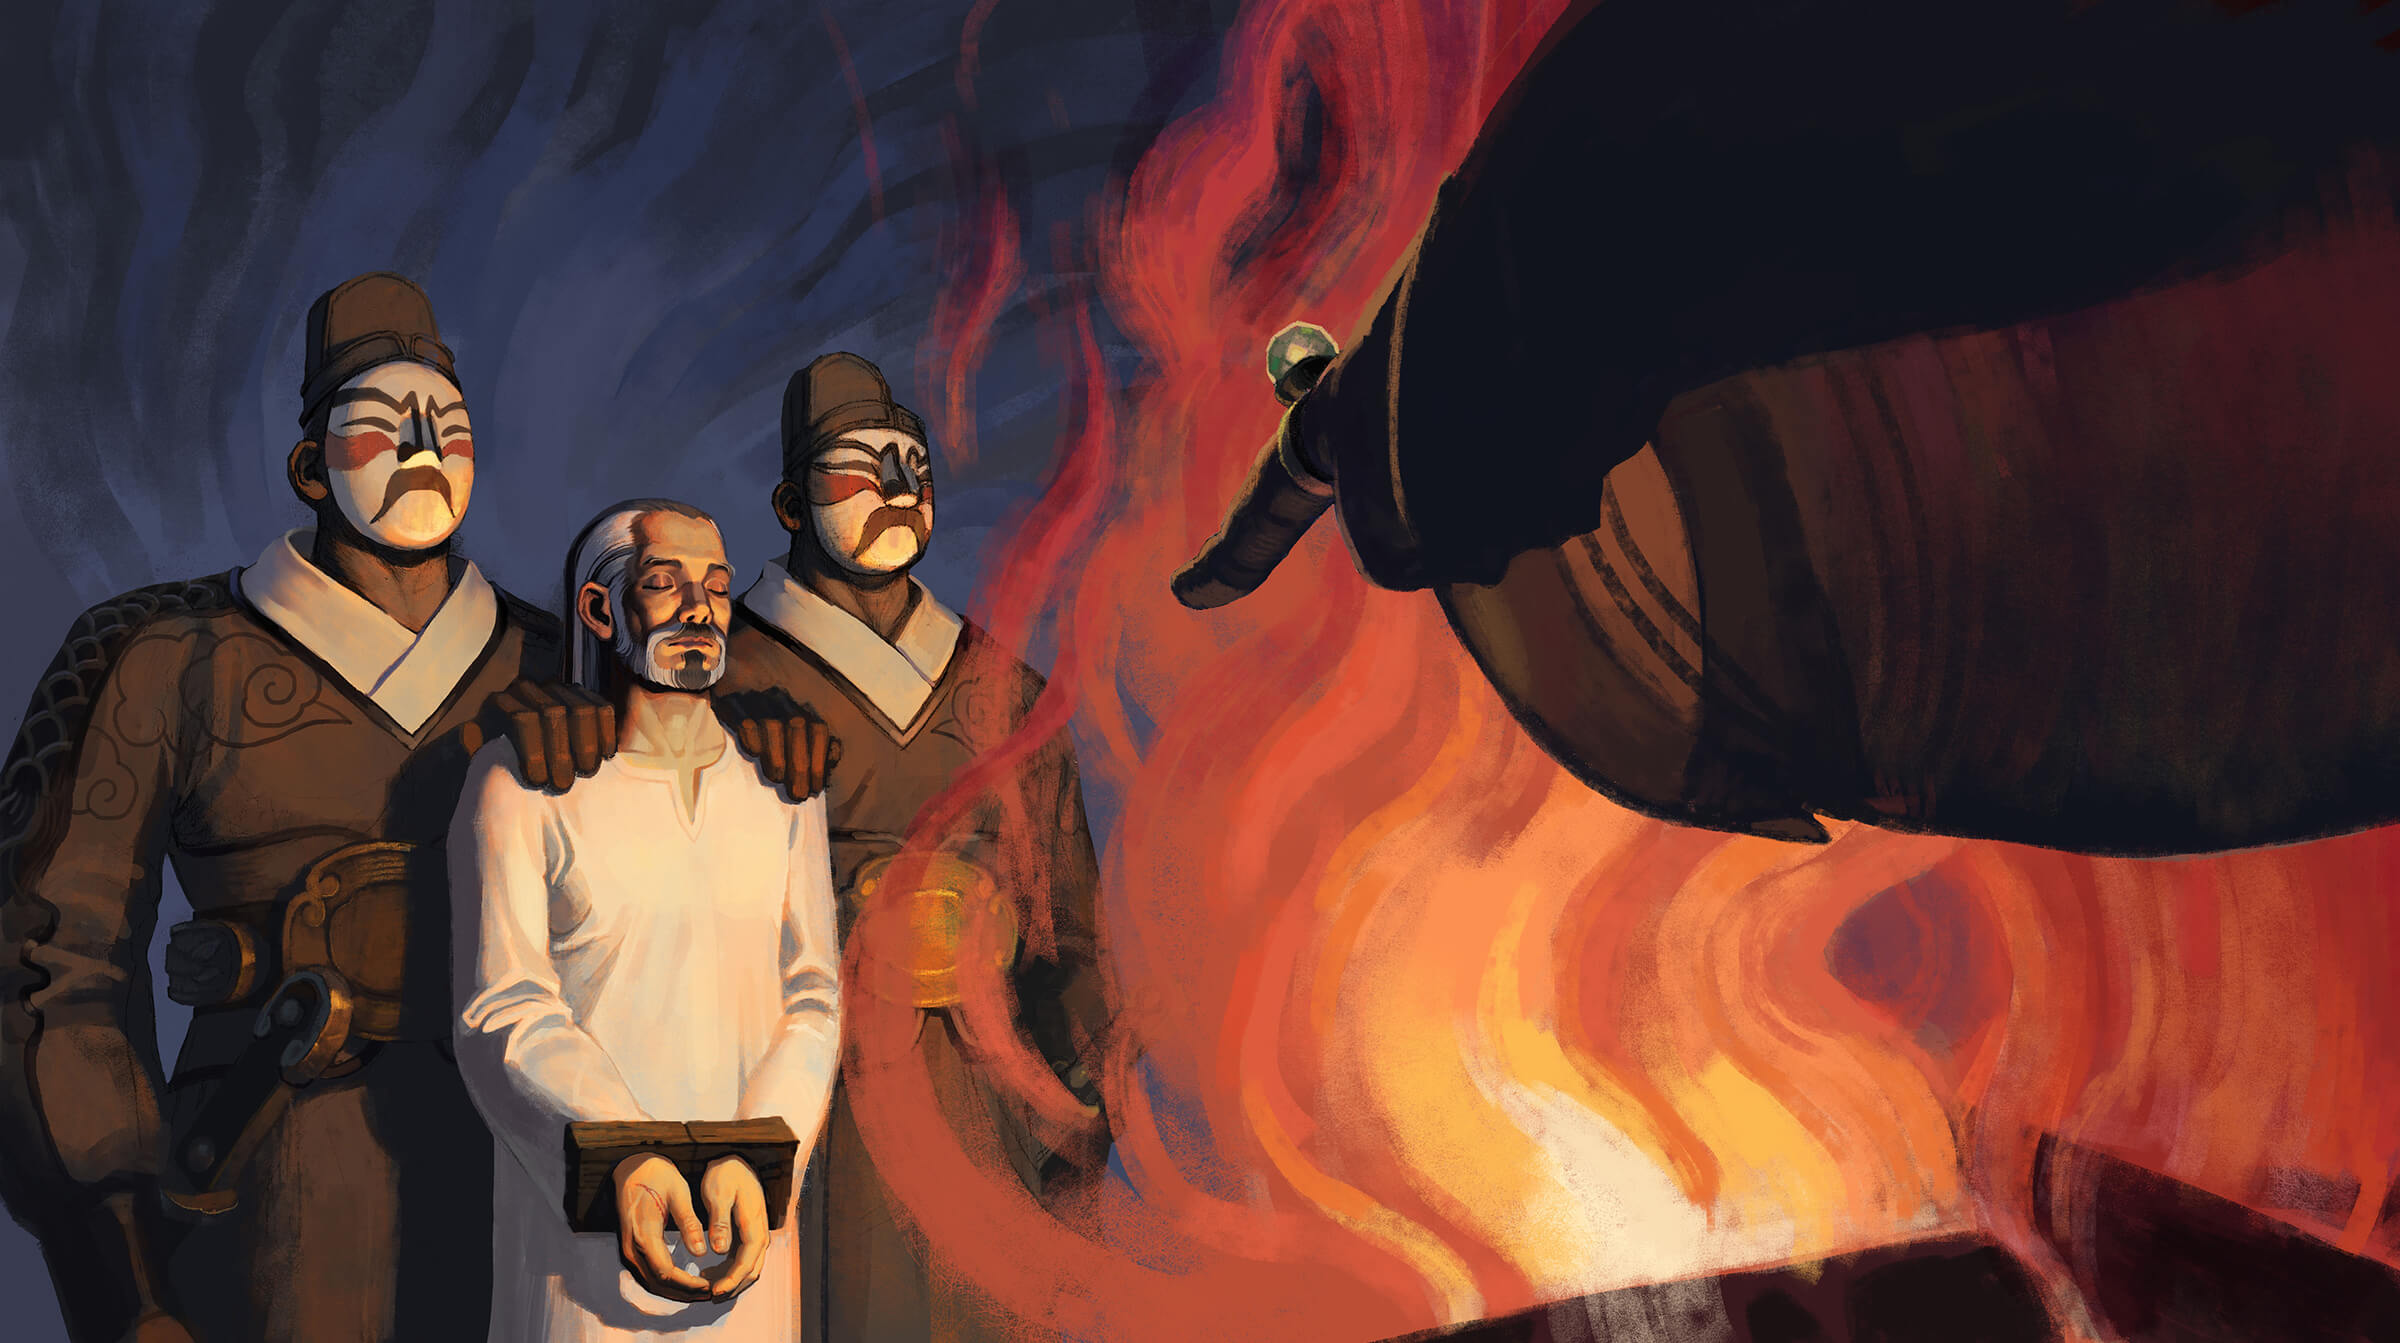 digital painting of a man in a white robe with his hands in cuffs guarded by two soldiers in front of a billowing fire